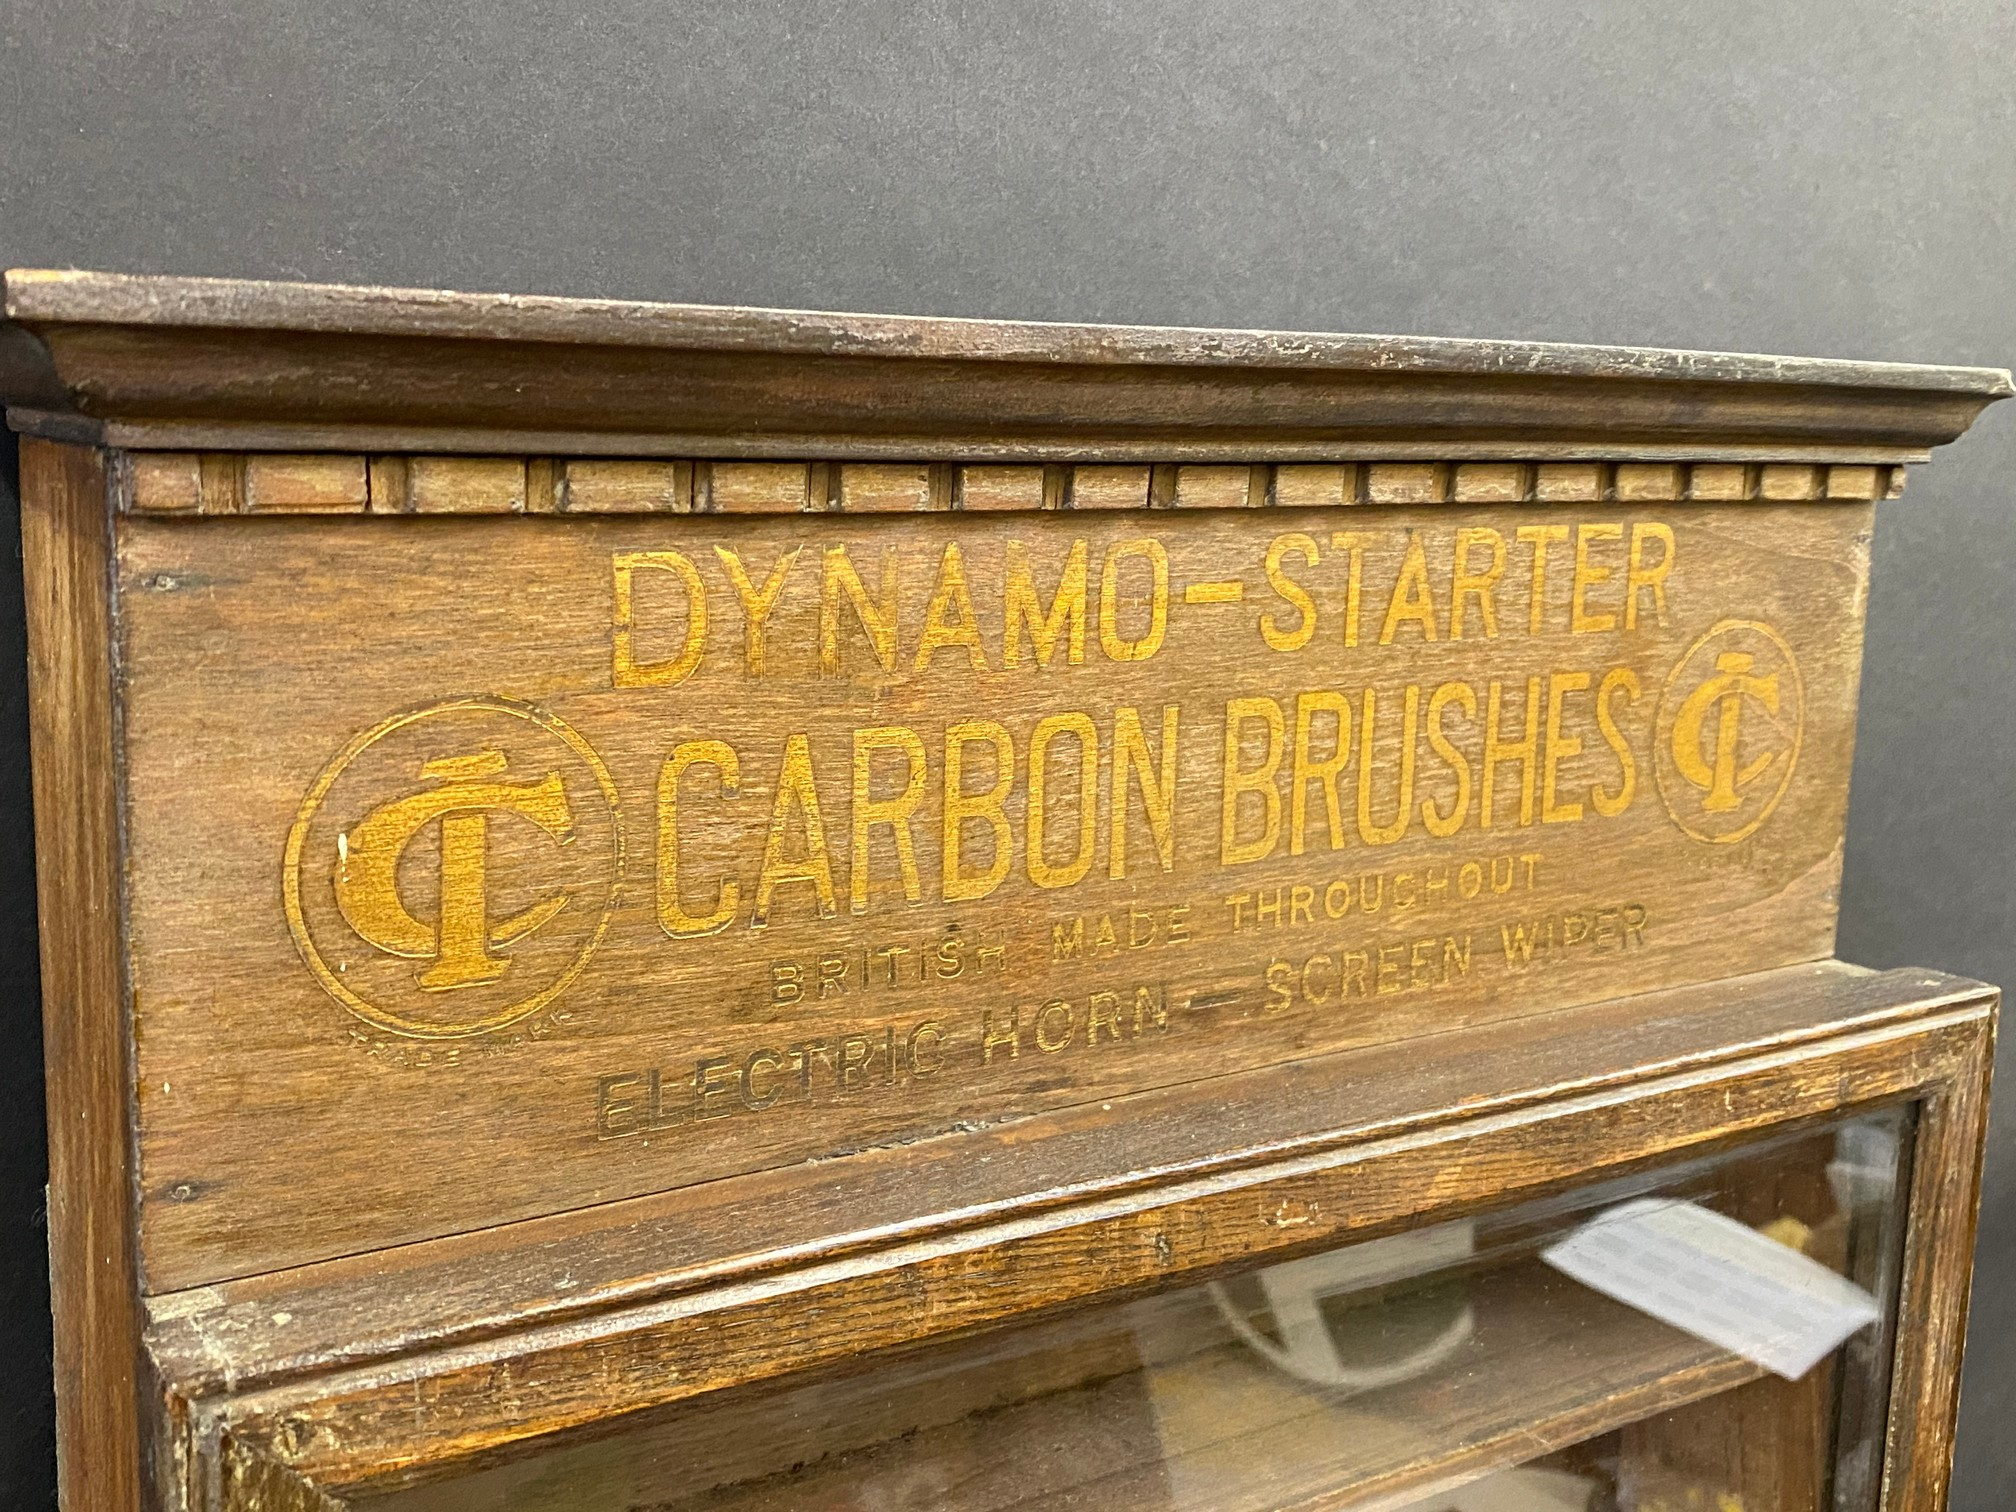 A 'Dynamo-Starter Carbon Brushes' narrow wall mounted front opening display/dispensing cabinet, - Image 2 of 4